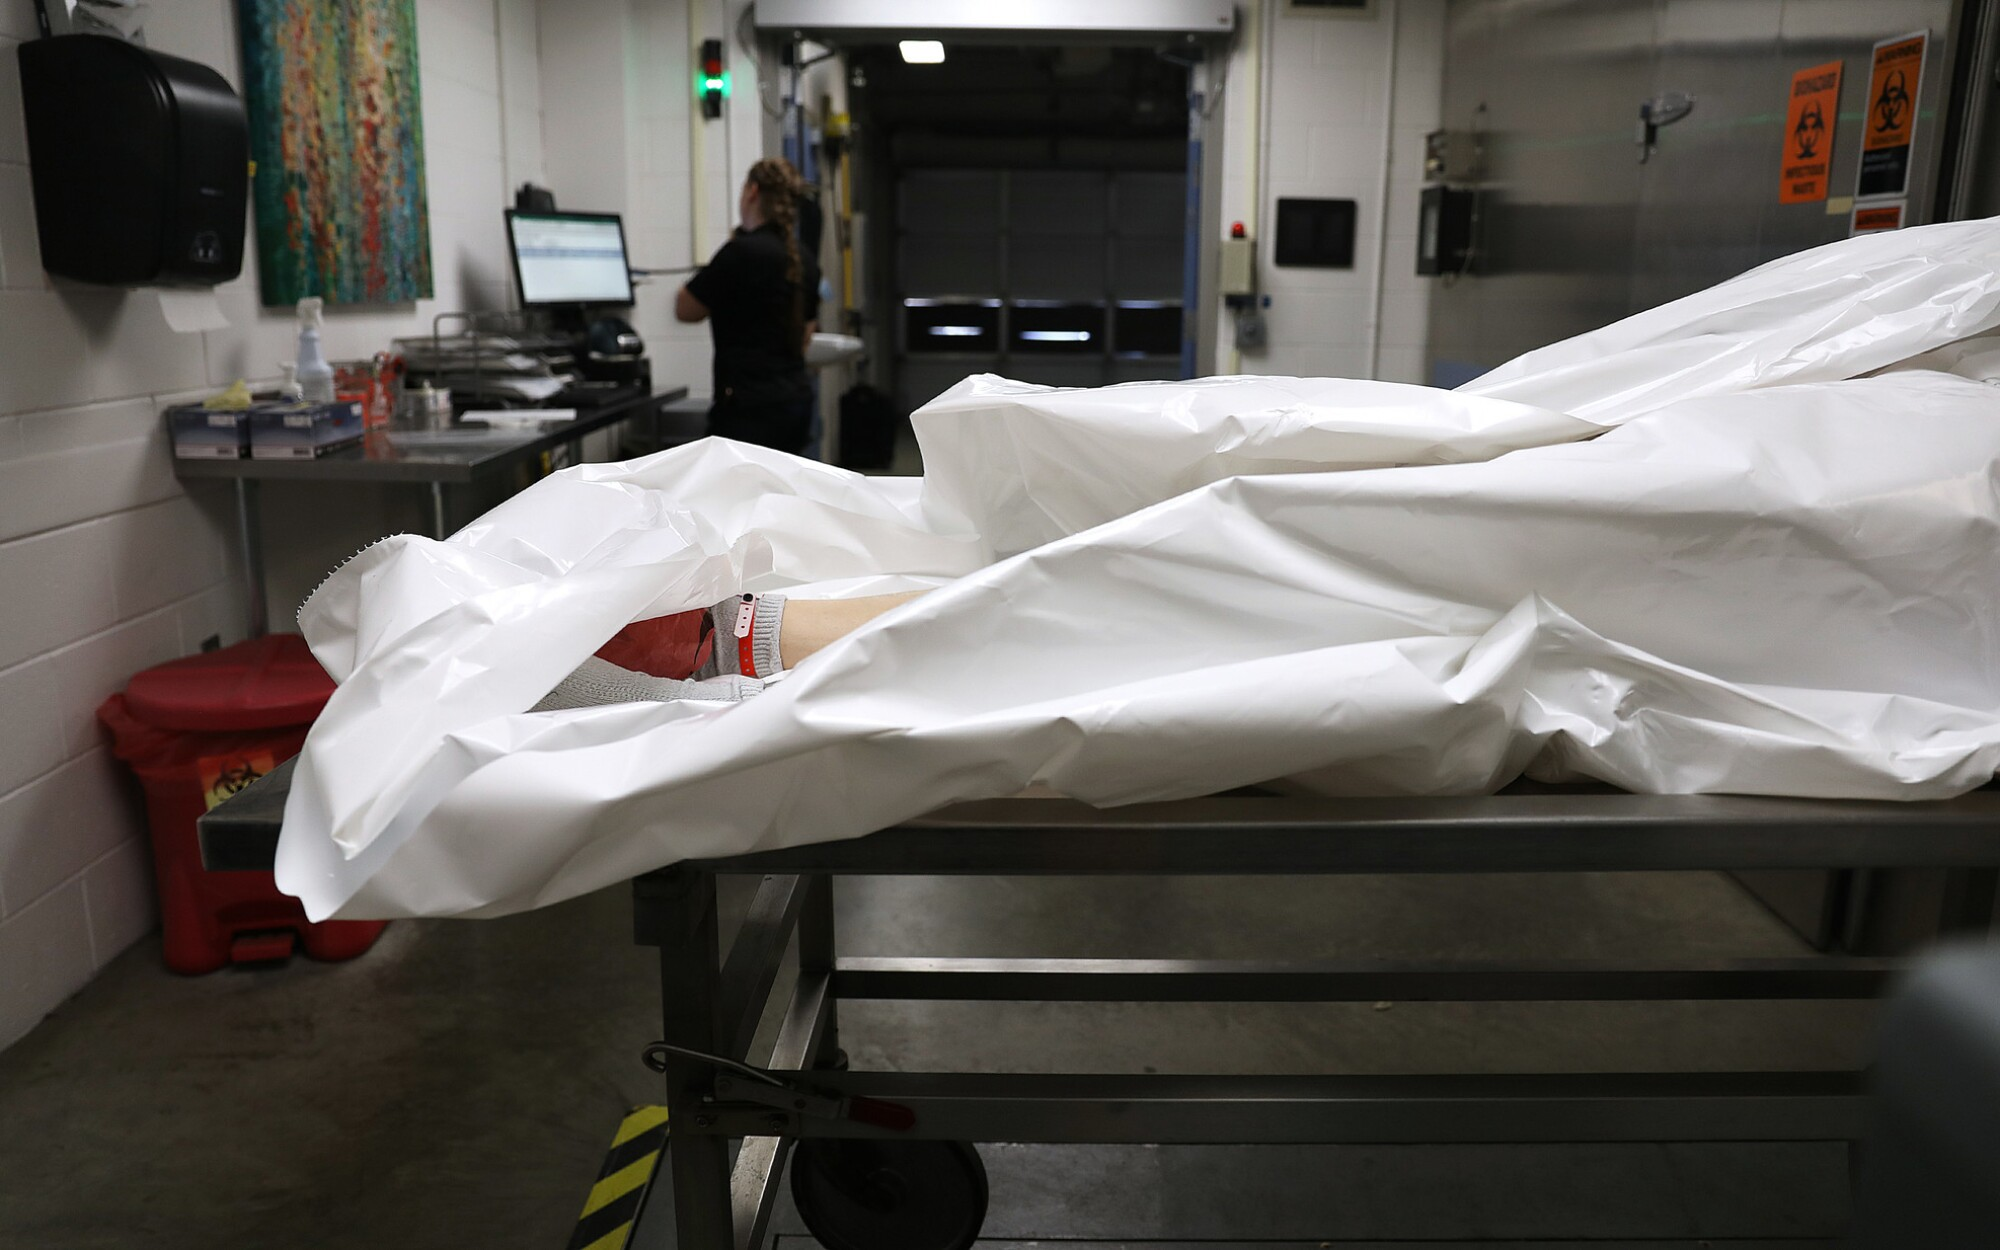 In the rush to harvest body parts, death investigations have been upended  - Los Angeles Times